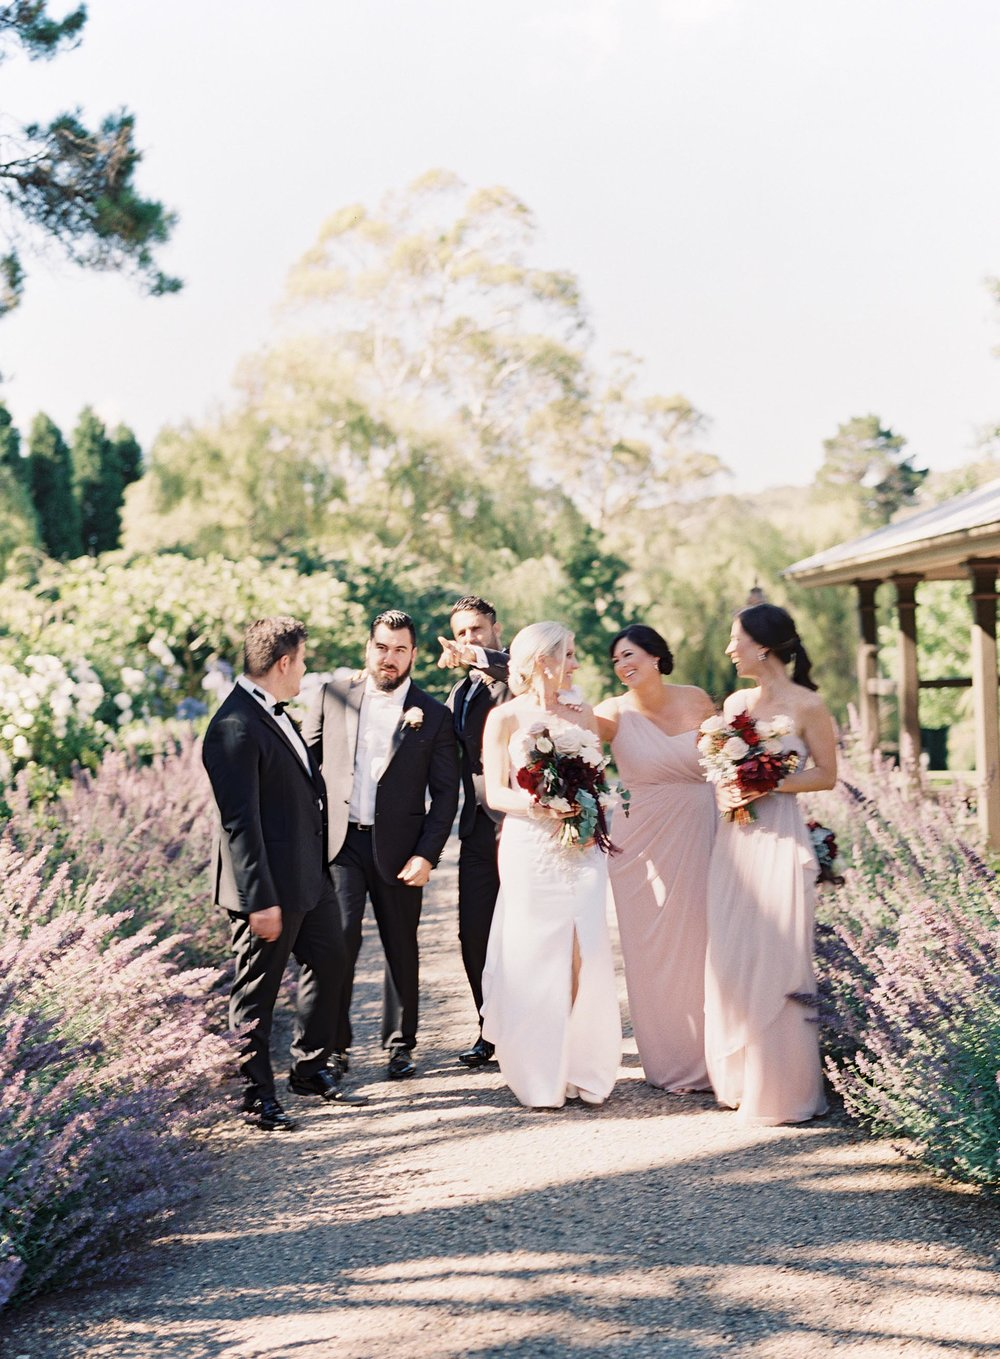 Hopewood House - Kylie & Gabriel - Wedding Day Gallery - Bowral Southern Highlands - ceremony and reception - shot 9 - Guests in the Garden.jpeg